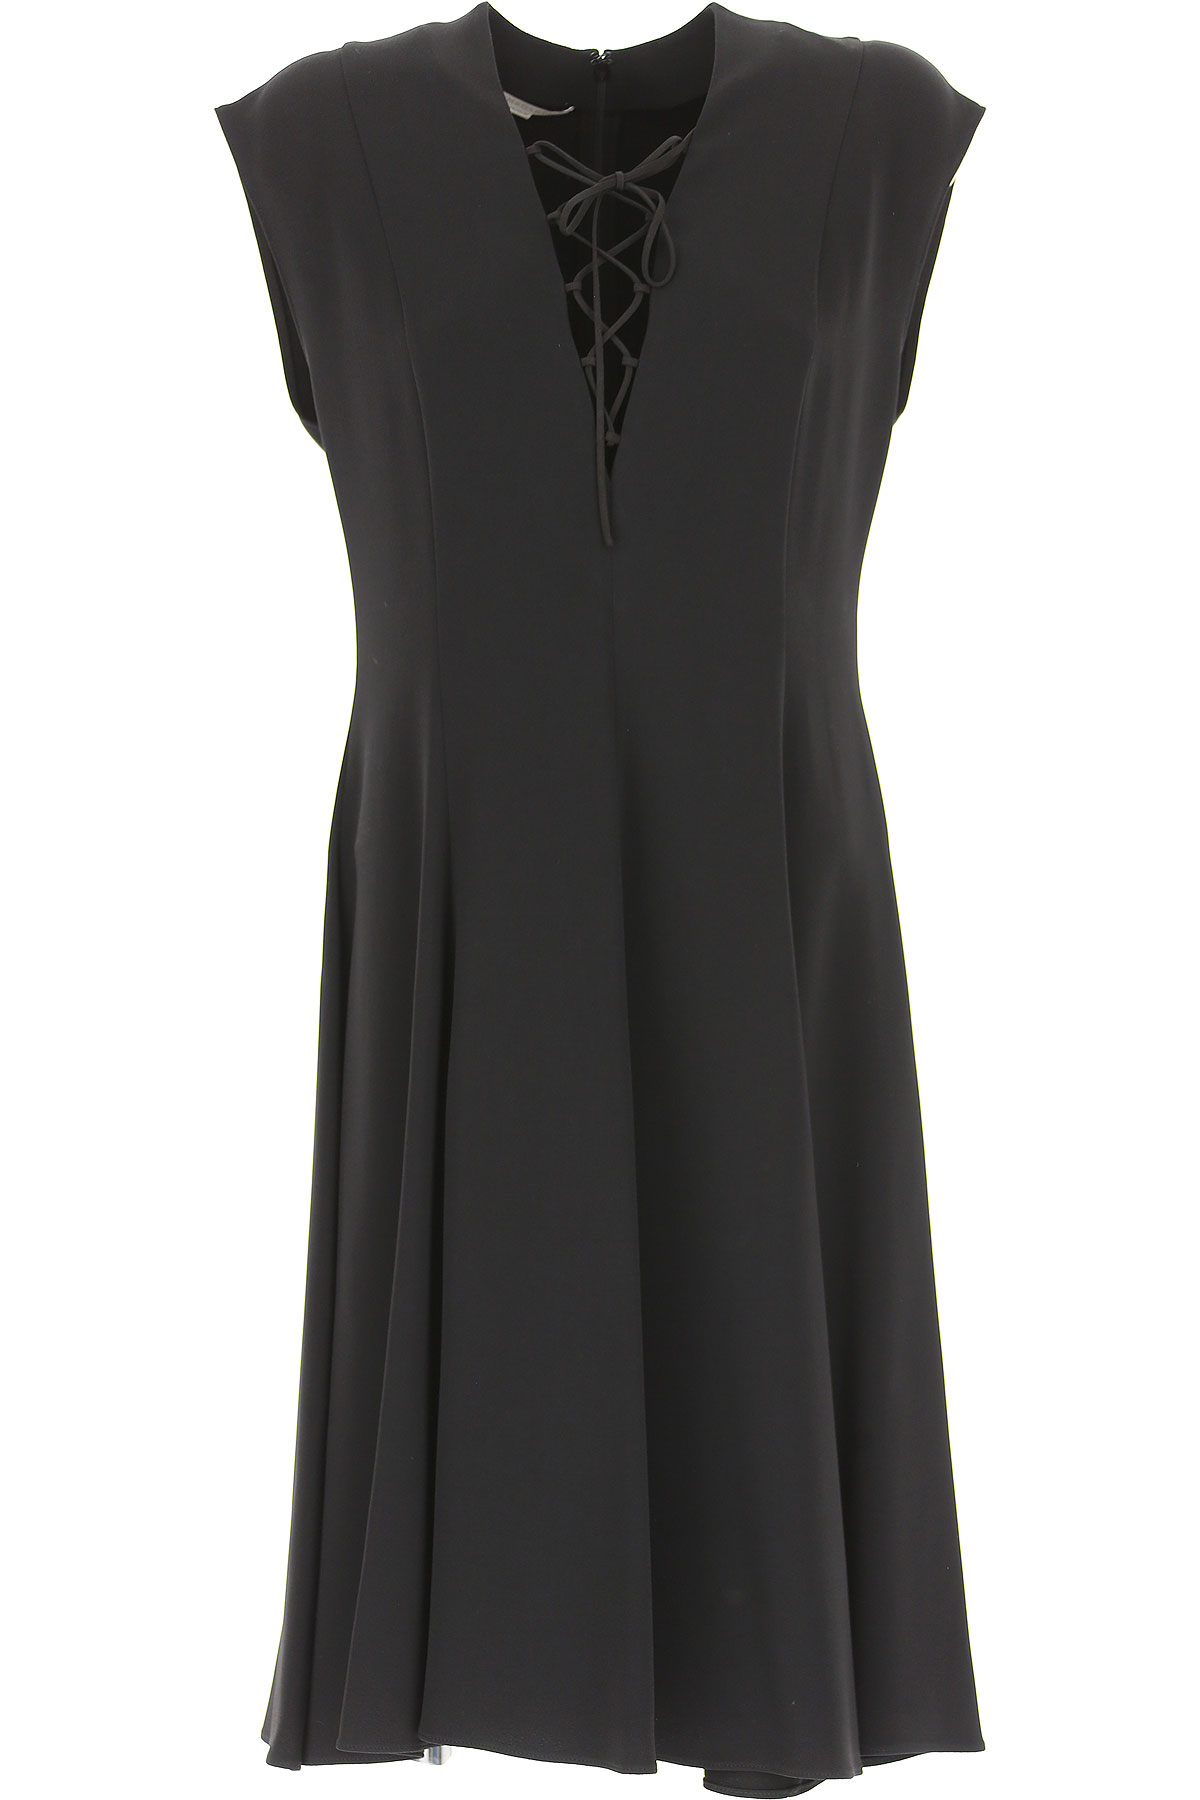 Stella McCartney Dress for Women, Evening Cocktail Party, Black, Viscose, 2017, 6 8 USA-470586